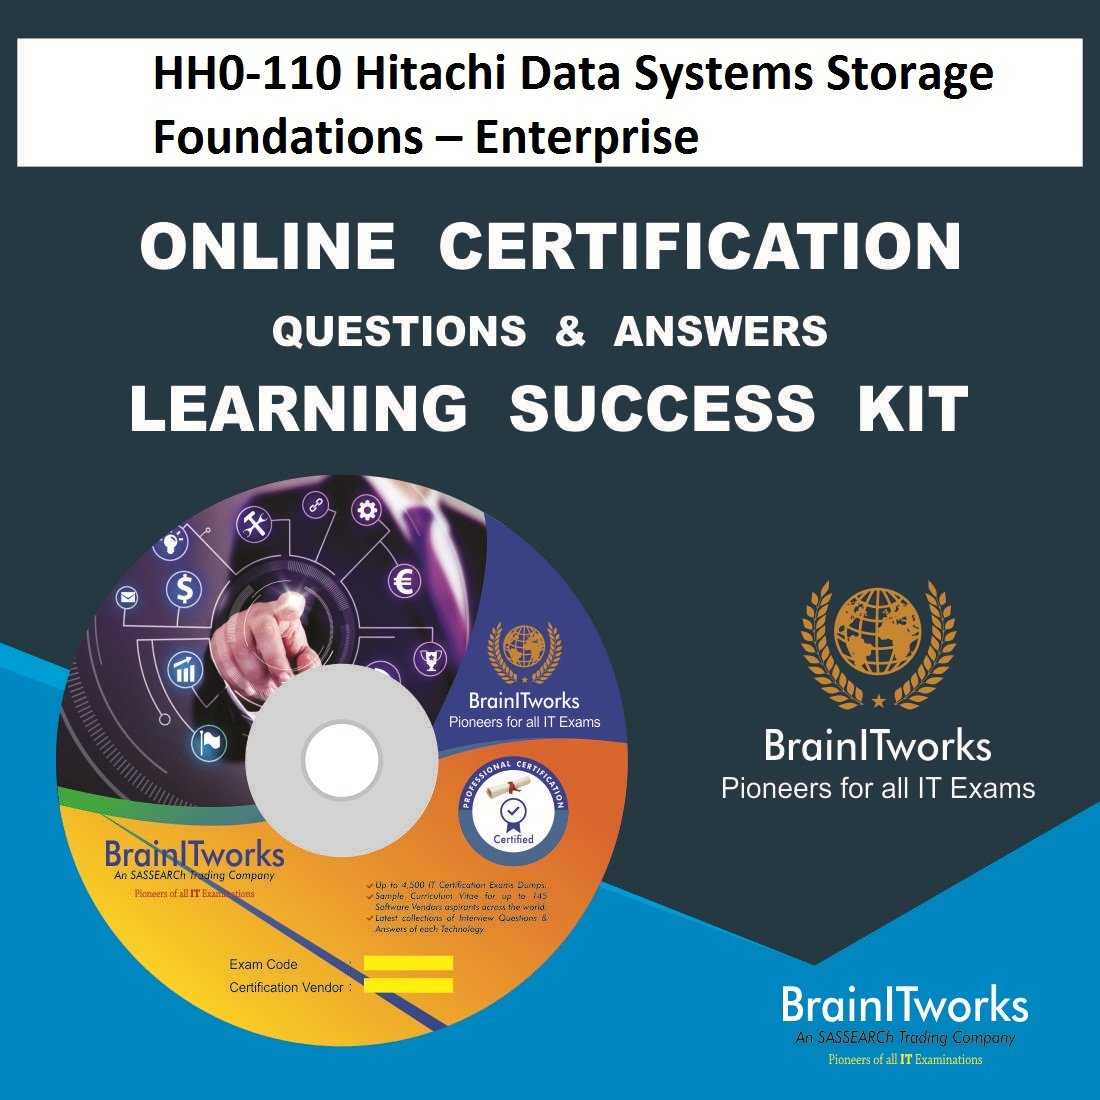 Amazon Hh0 110 Hitachi Data Systems Storage Foundations